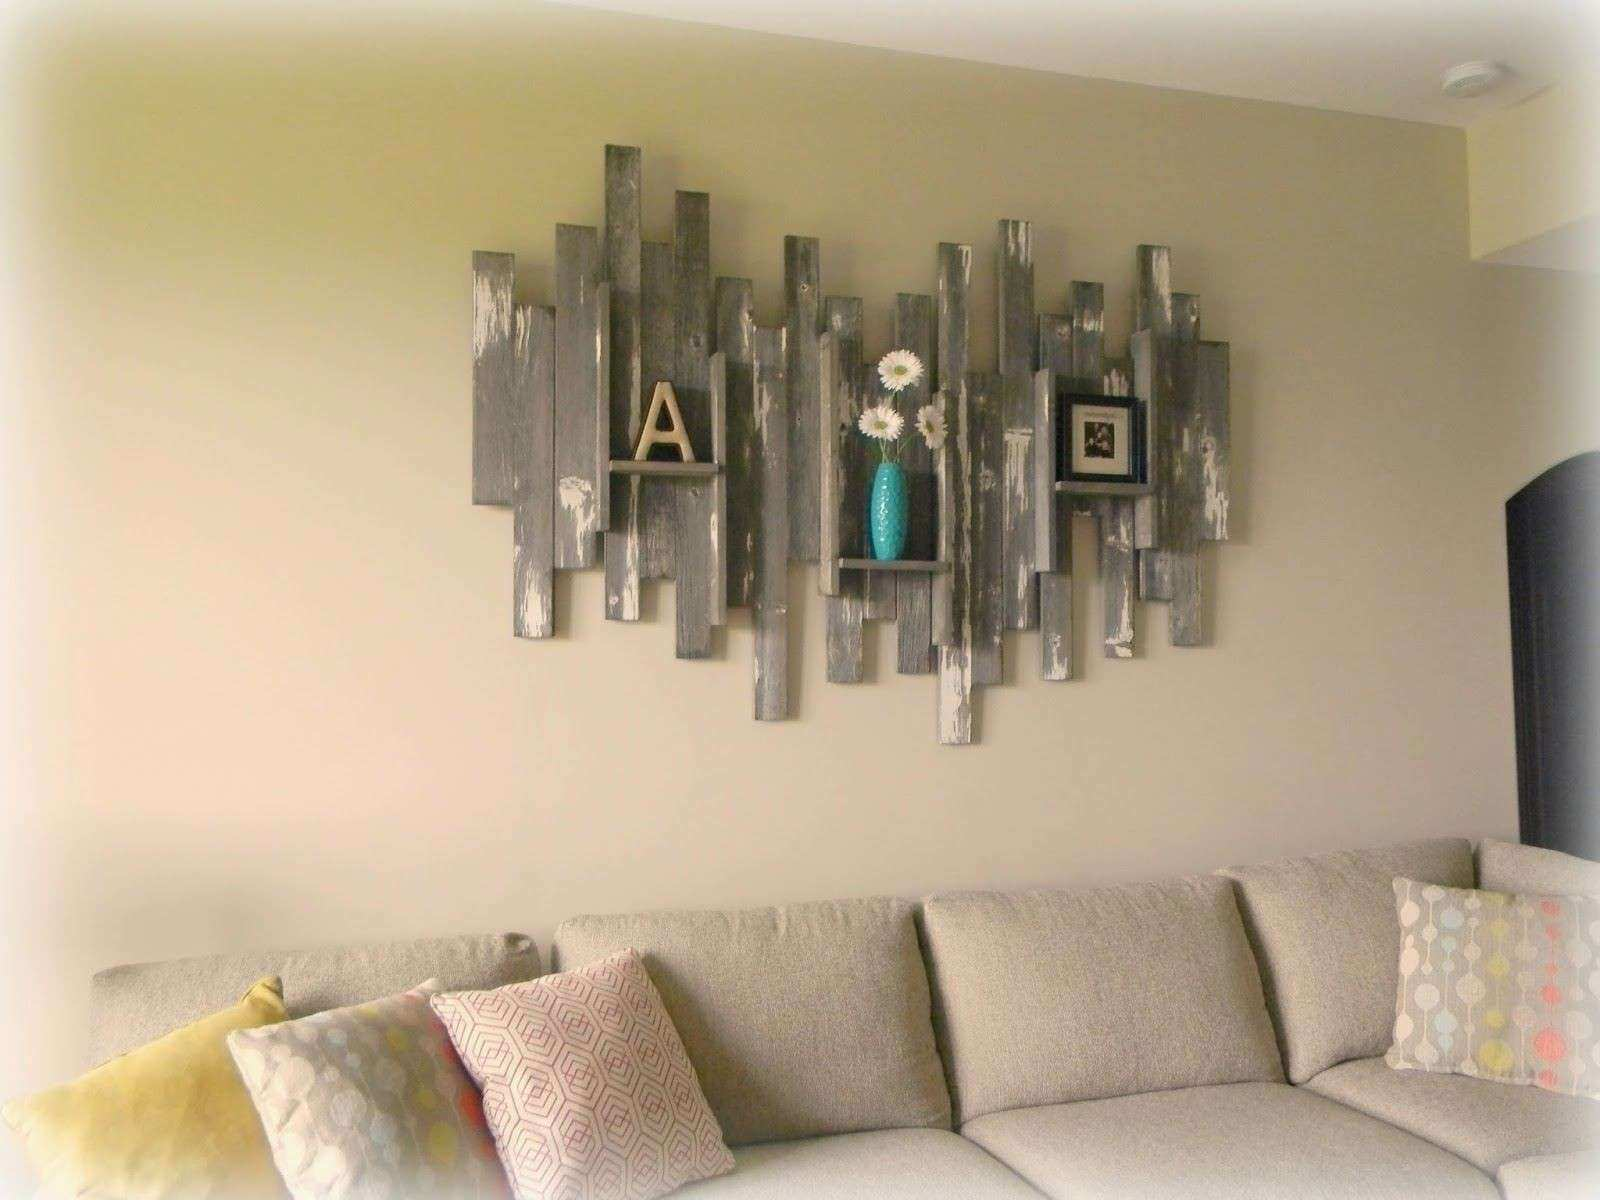 Barn Wood Wall Art & Basement Barn Wood Wall Decor 6